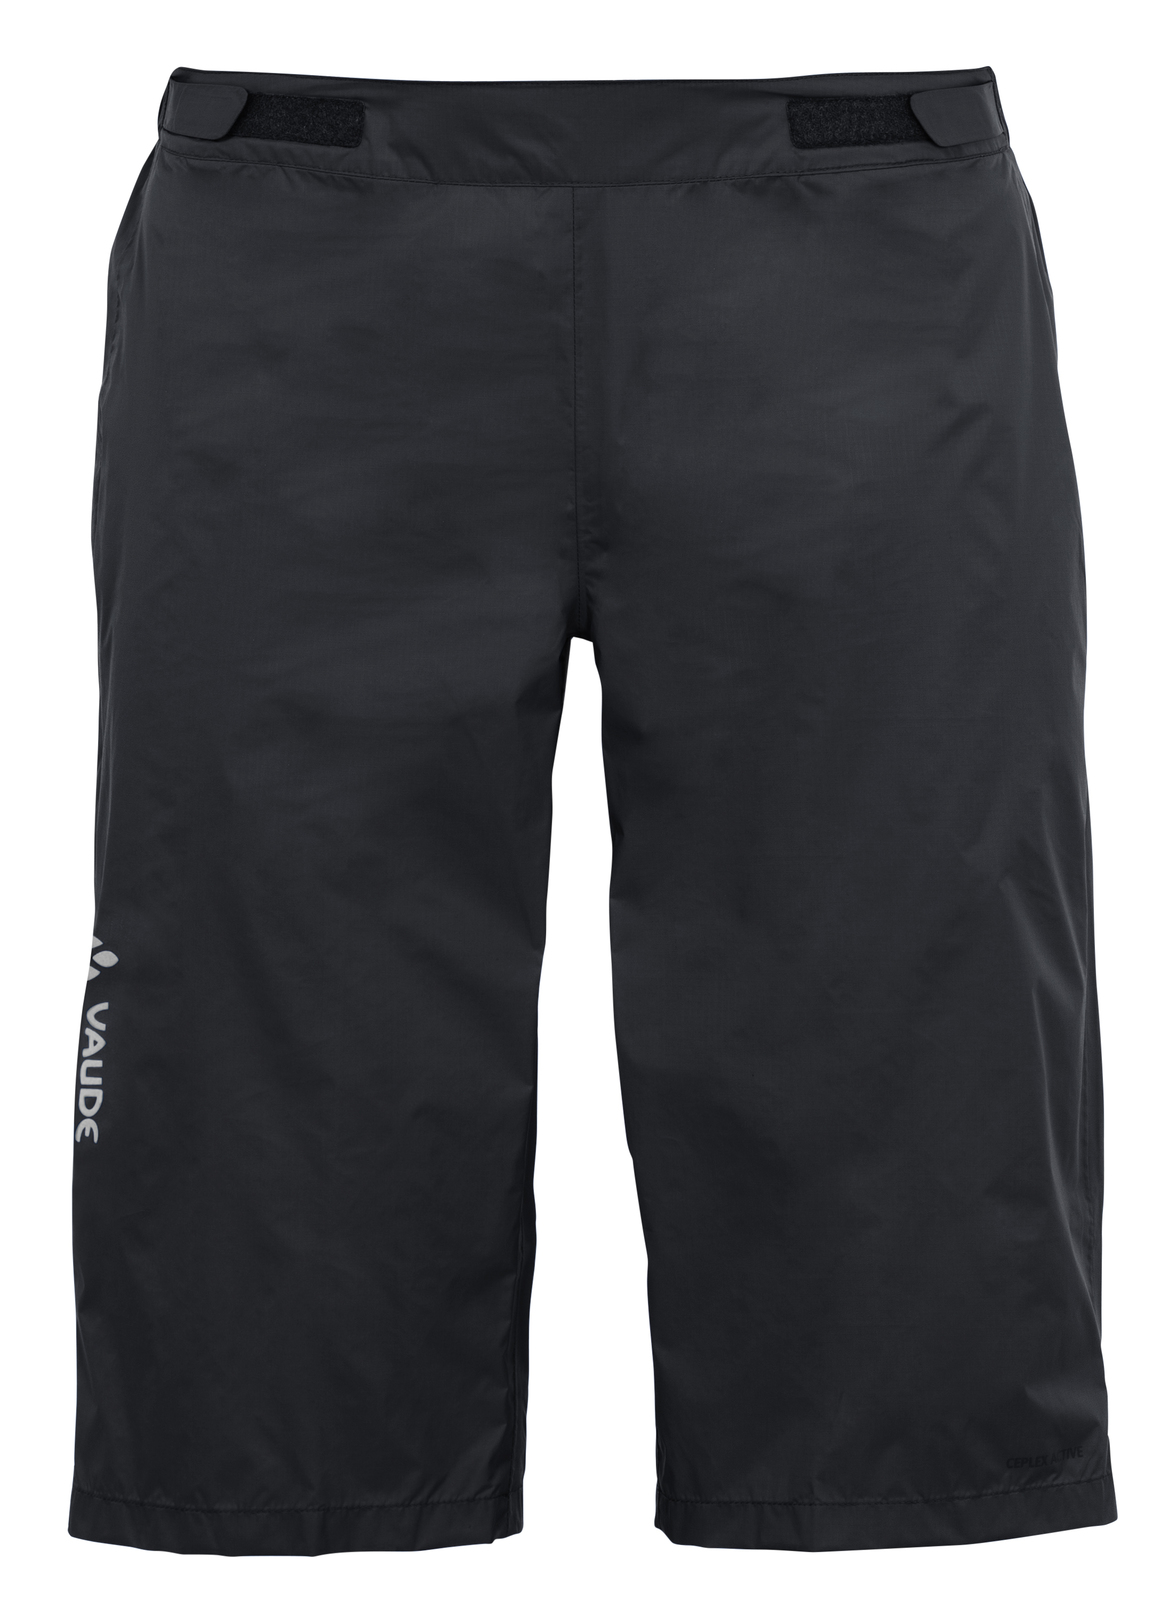 VAUDE Men´s Tremalzo Rain Shorts black Größe L - schneider-sports